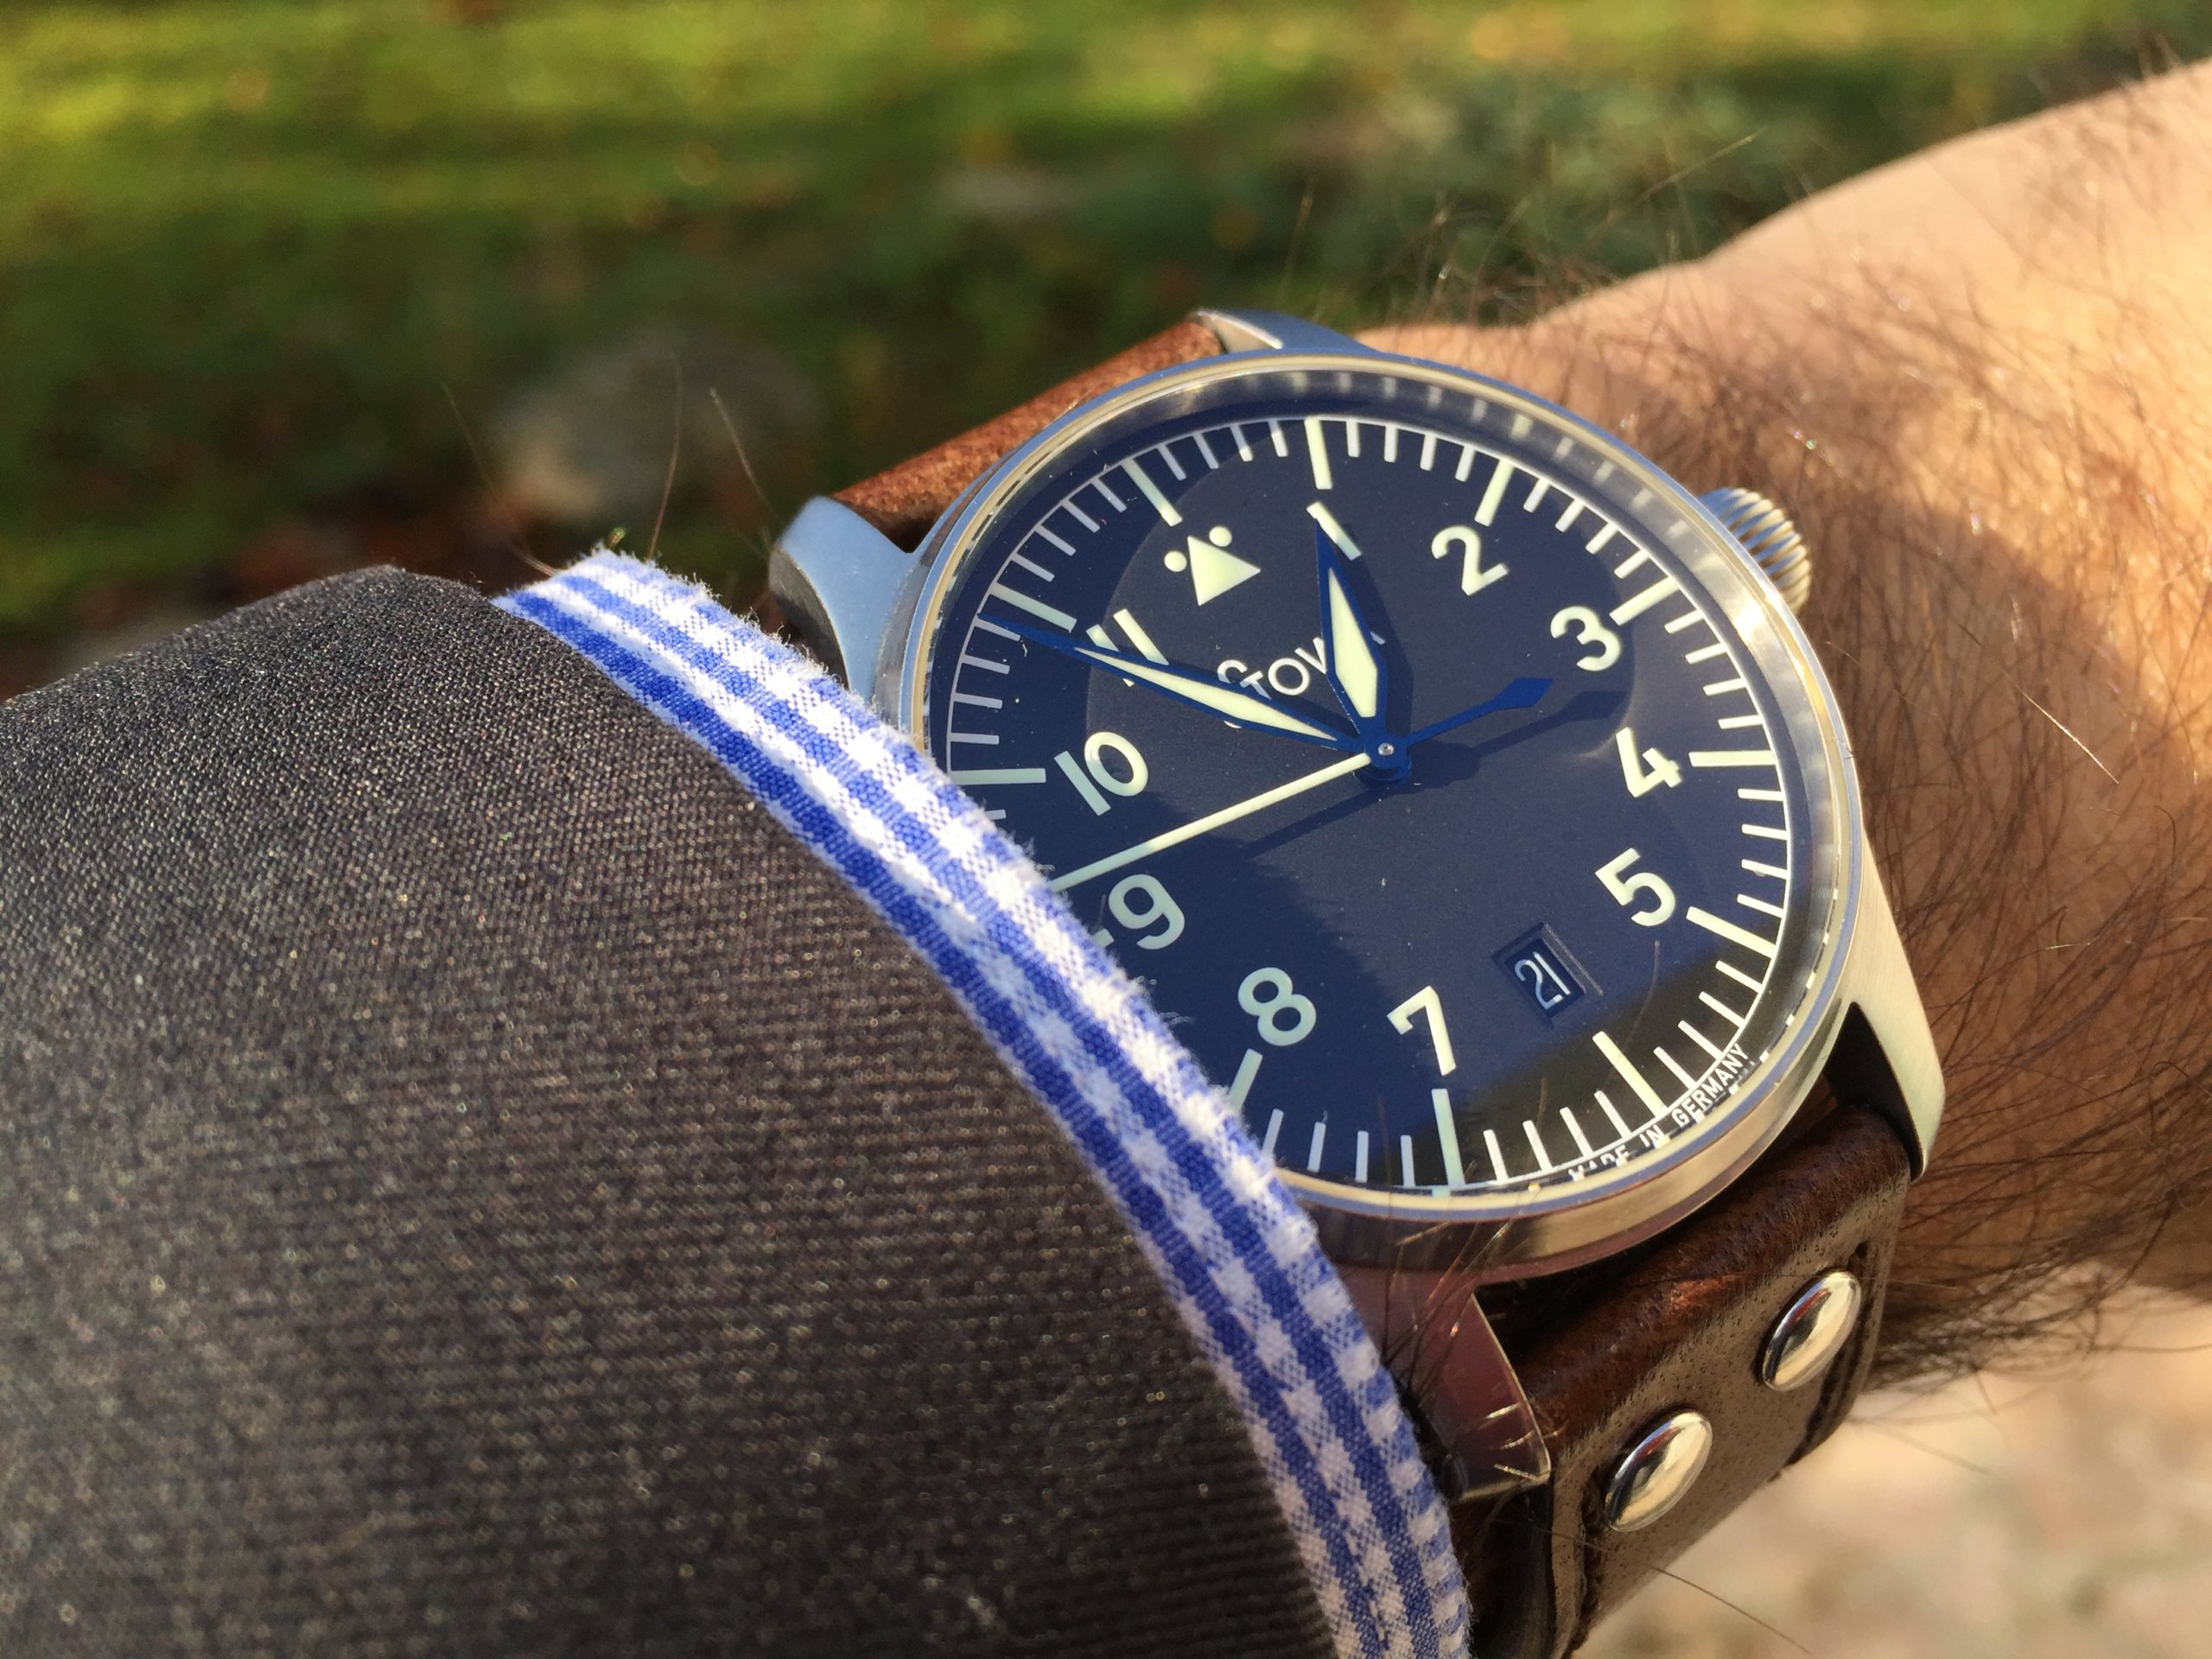 stowa - STOWA Flieger Club [The Official Subject] - Vol IV - Page 23 Img_5941